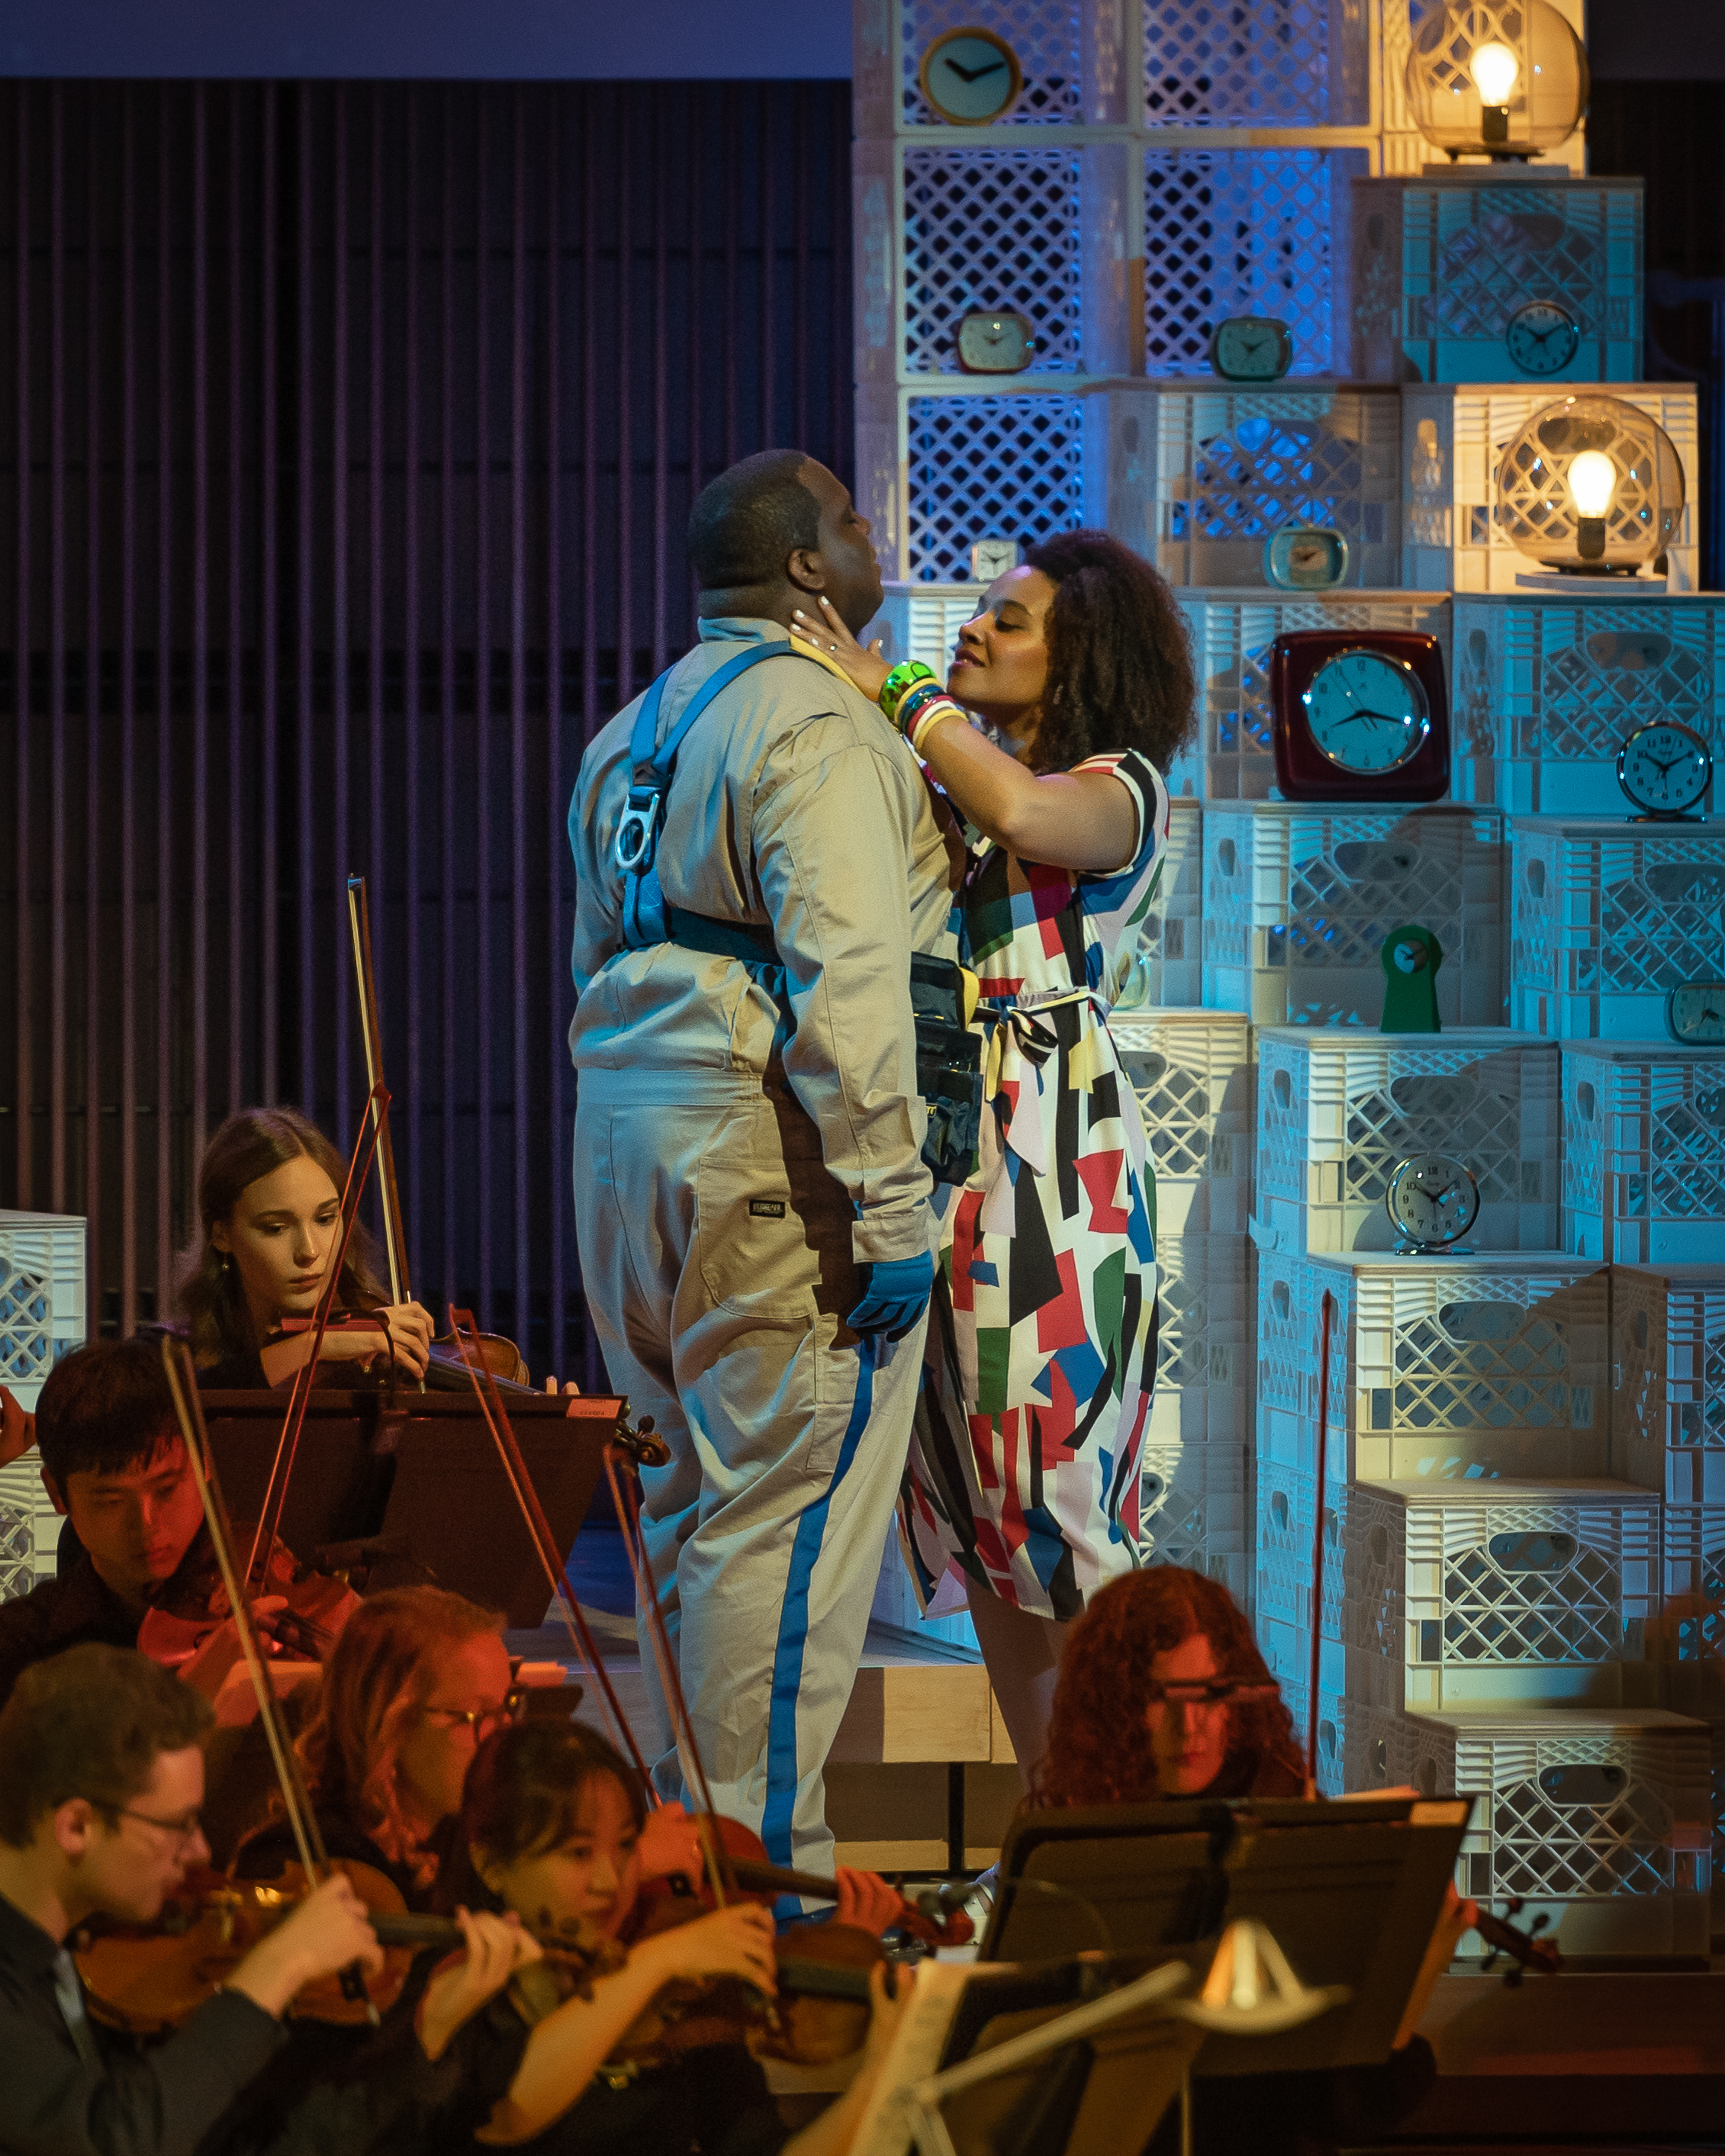 Concepcion (Taylor Raven) decides that in love, it is the muleteer's turn (Joshua Conyers) - regards to Boccacio. Photo by Rob Wallace/MIndful Photo; courtesy of Wolf Trap Opera.